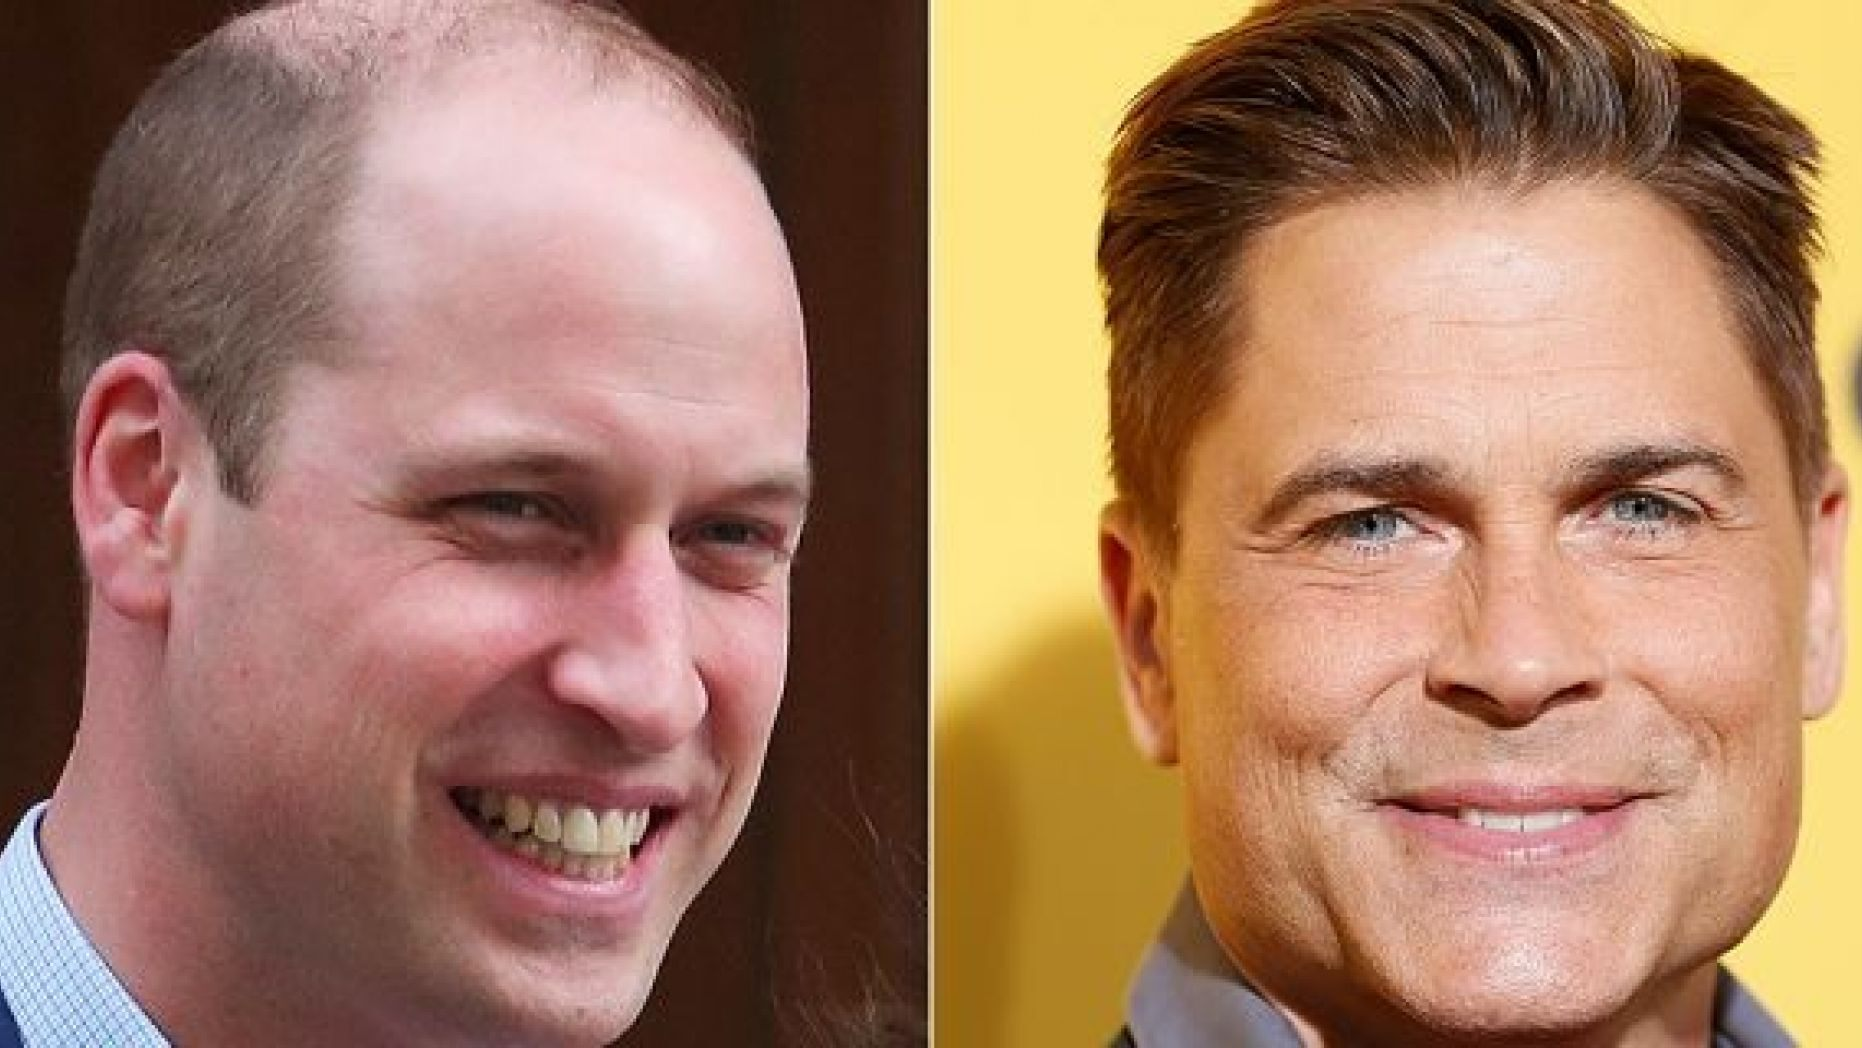 rob-lowe-slams-prince-william-because-of-his-thinning-hair-says-the-royal-let-himself-go